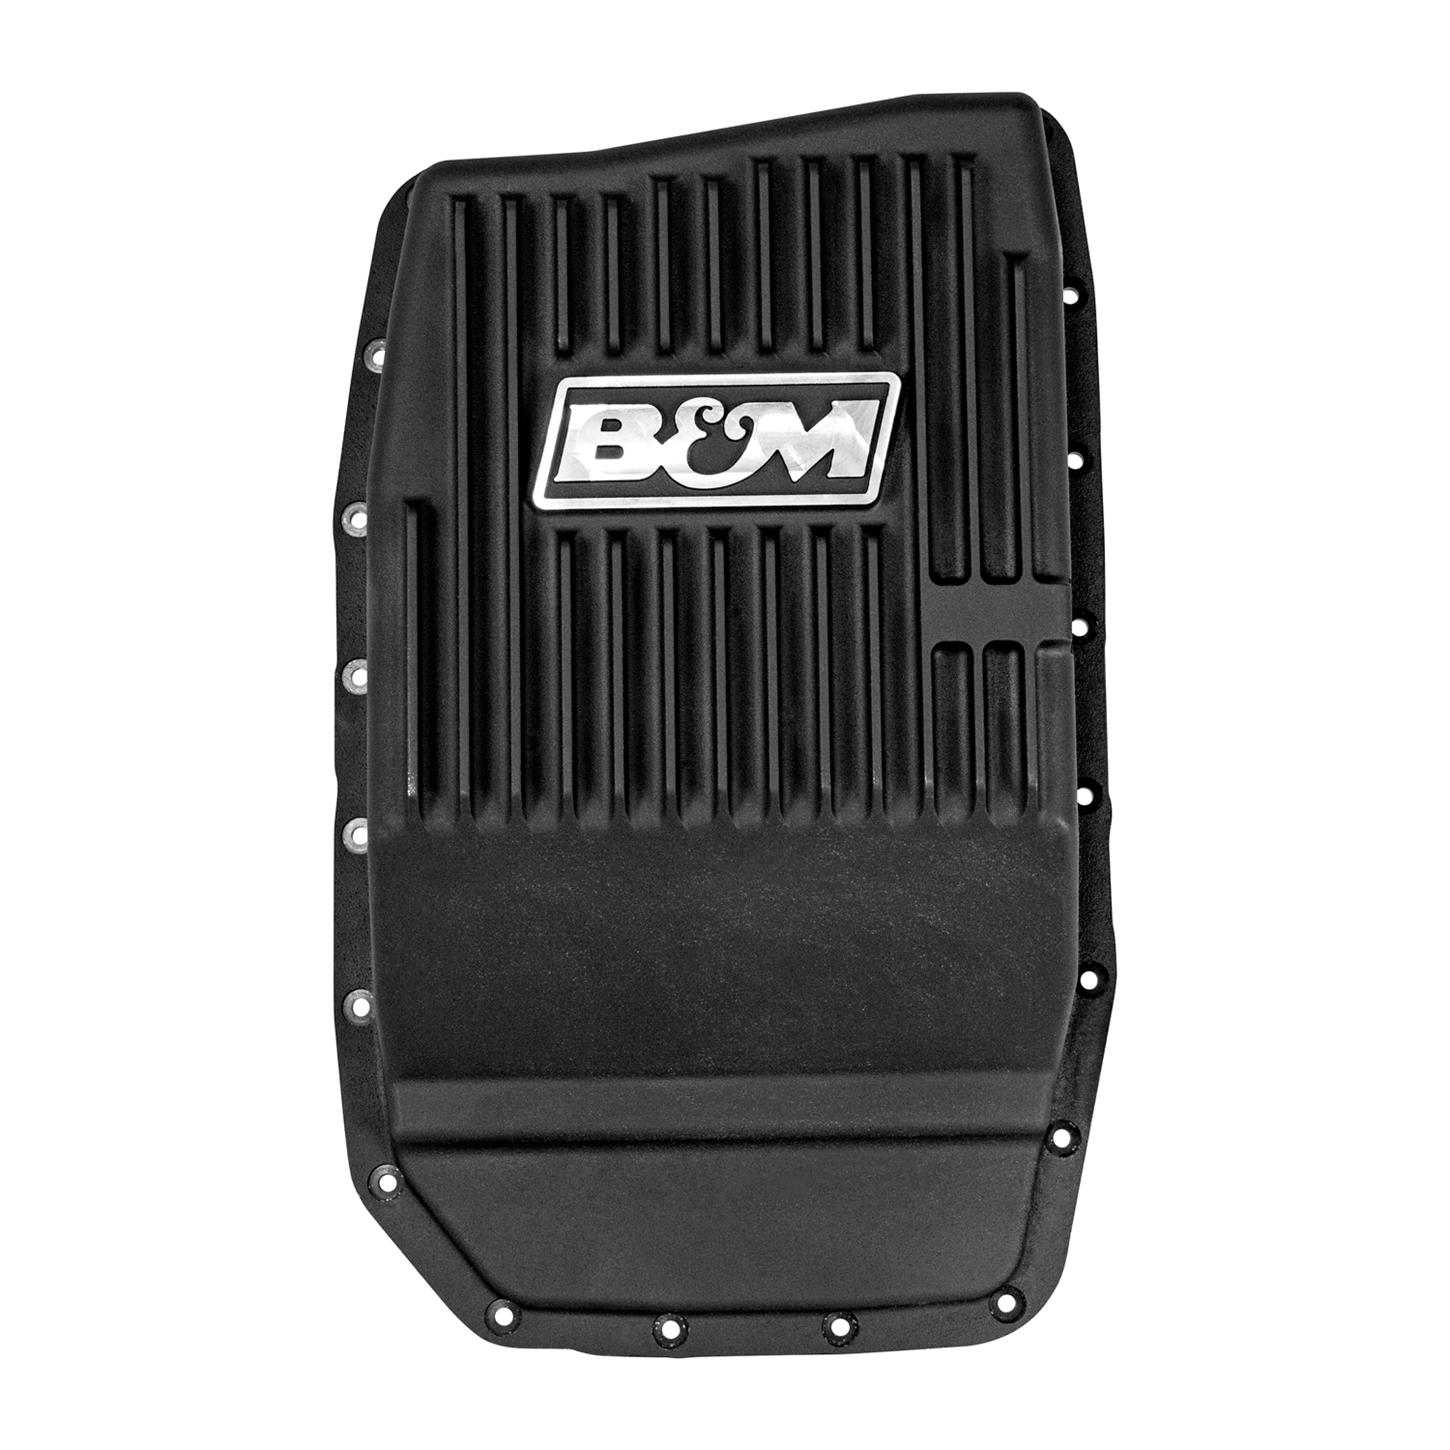 hight resolution of  ford b m 70394 cast alum trans pan for ford 6r80 black anodized on ford transmission crossmember